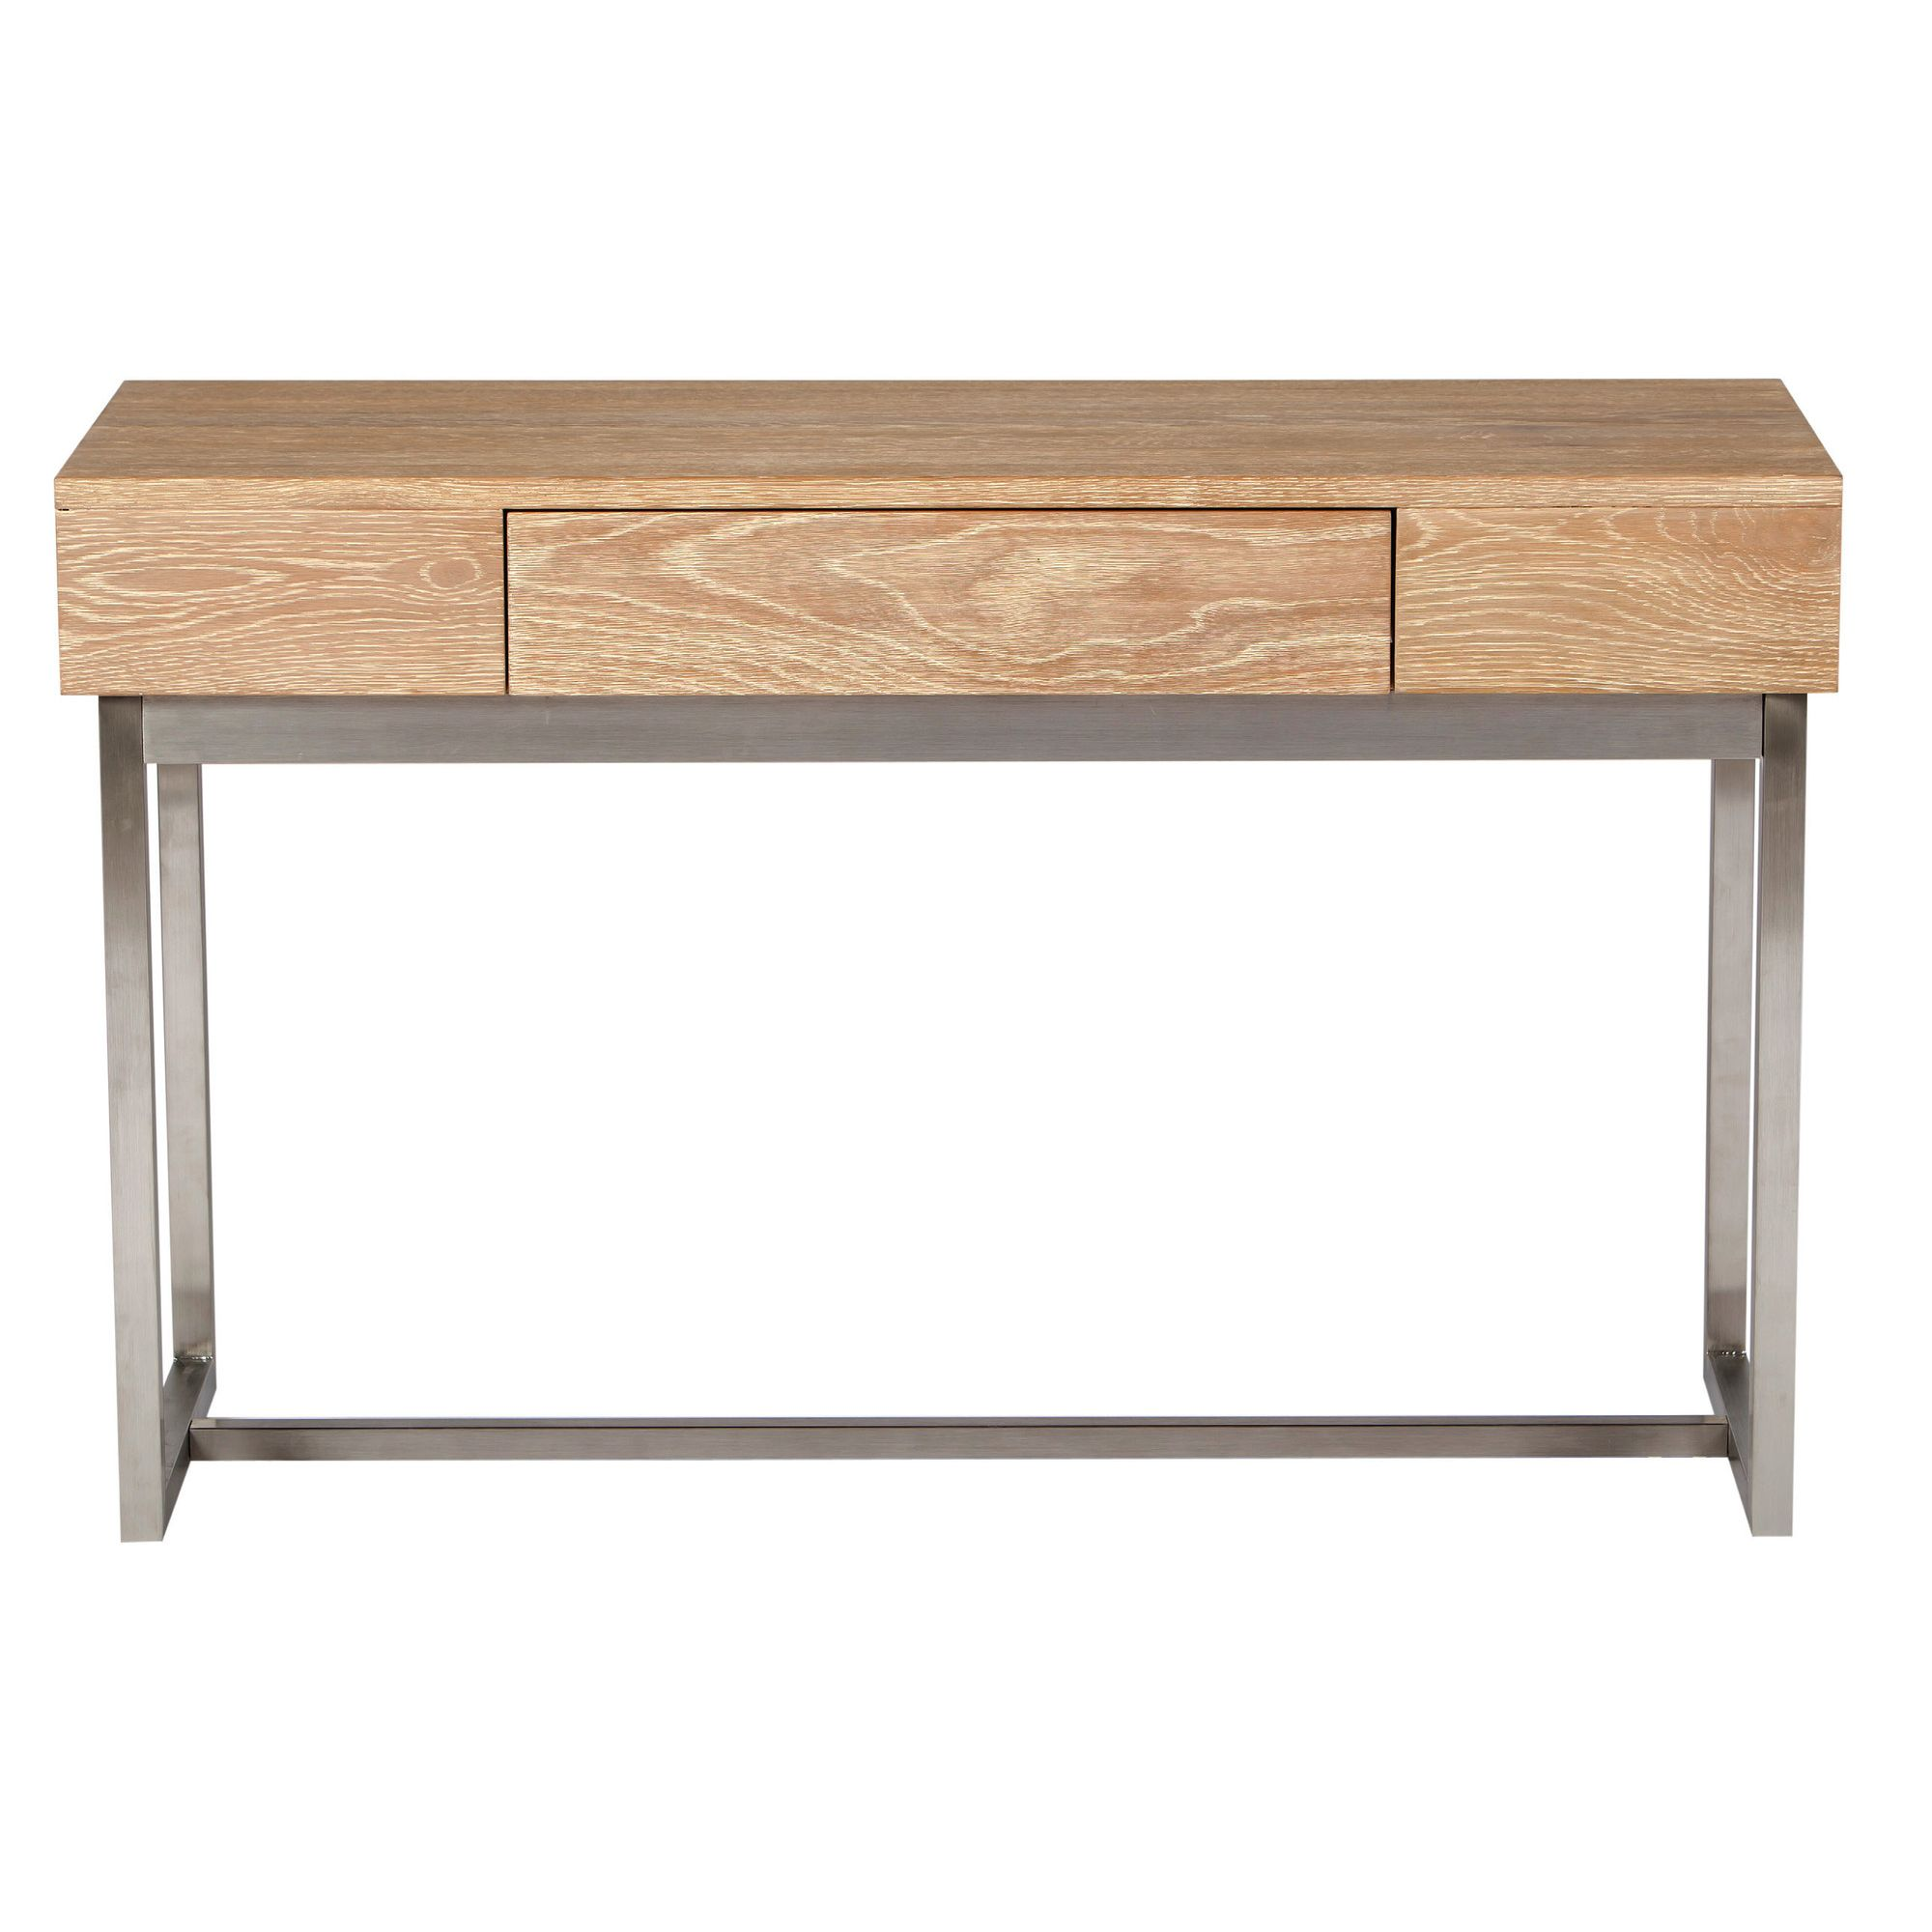 Chanter Drift Console Table in Oak